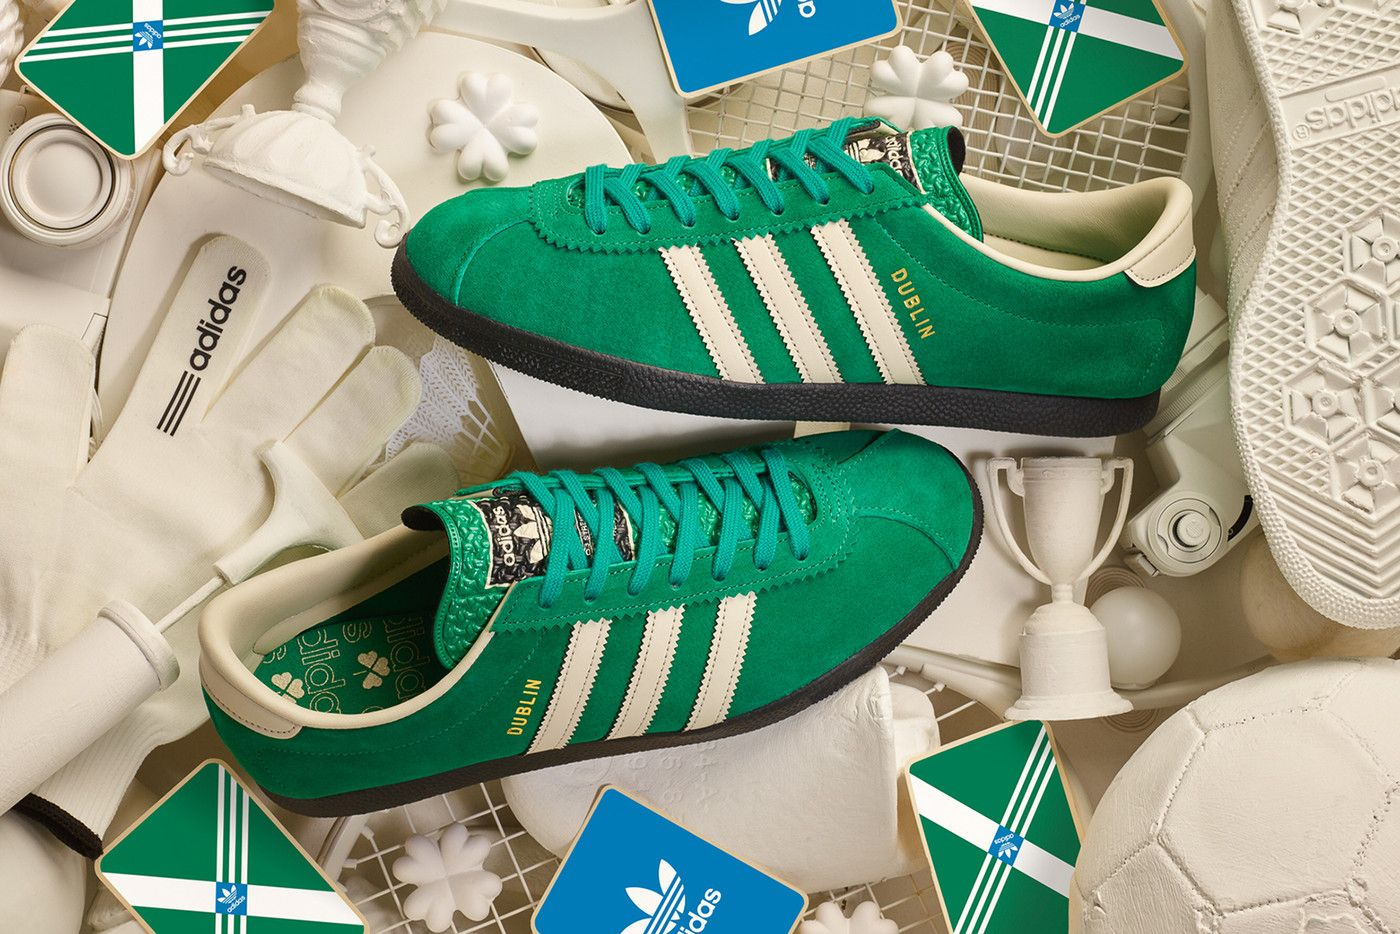 bbc9f2de0 adidas Originals Archive Dublin St Patricks Day size Exclusive march 17  2018 release date info drop green sneakers shoes footwear